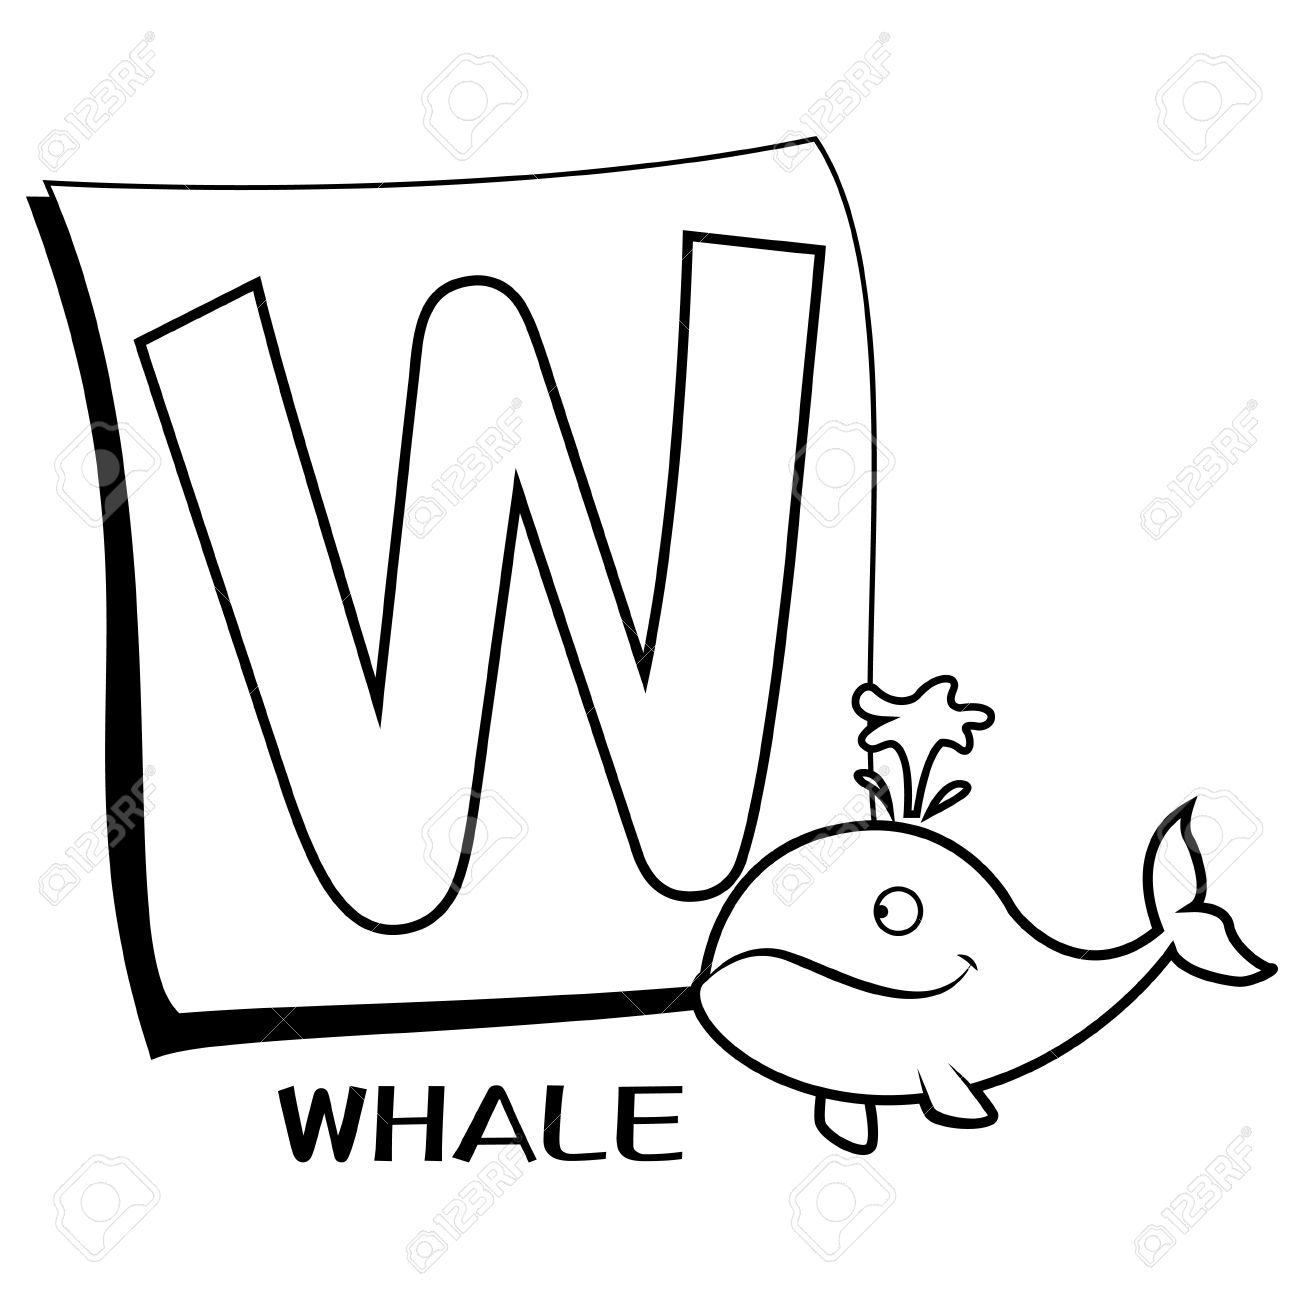 1300x1300 Coloring Alphabet For Kids, W With Whale Royalty Free Cliparts